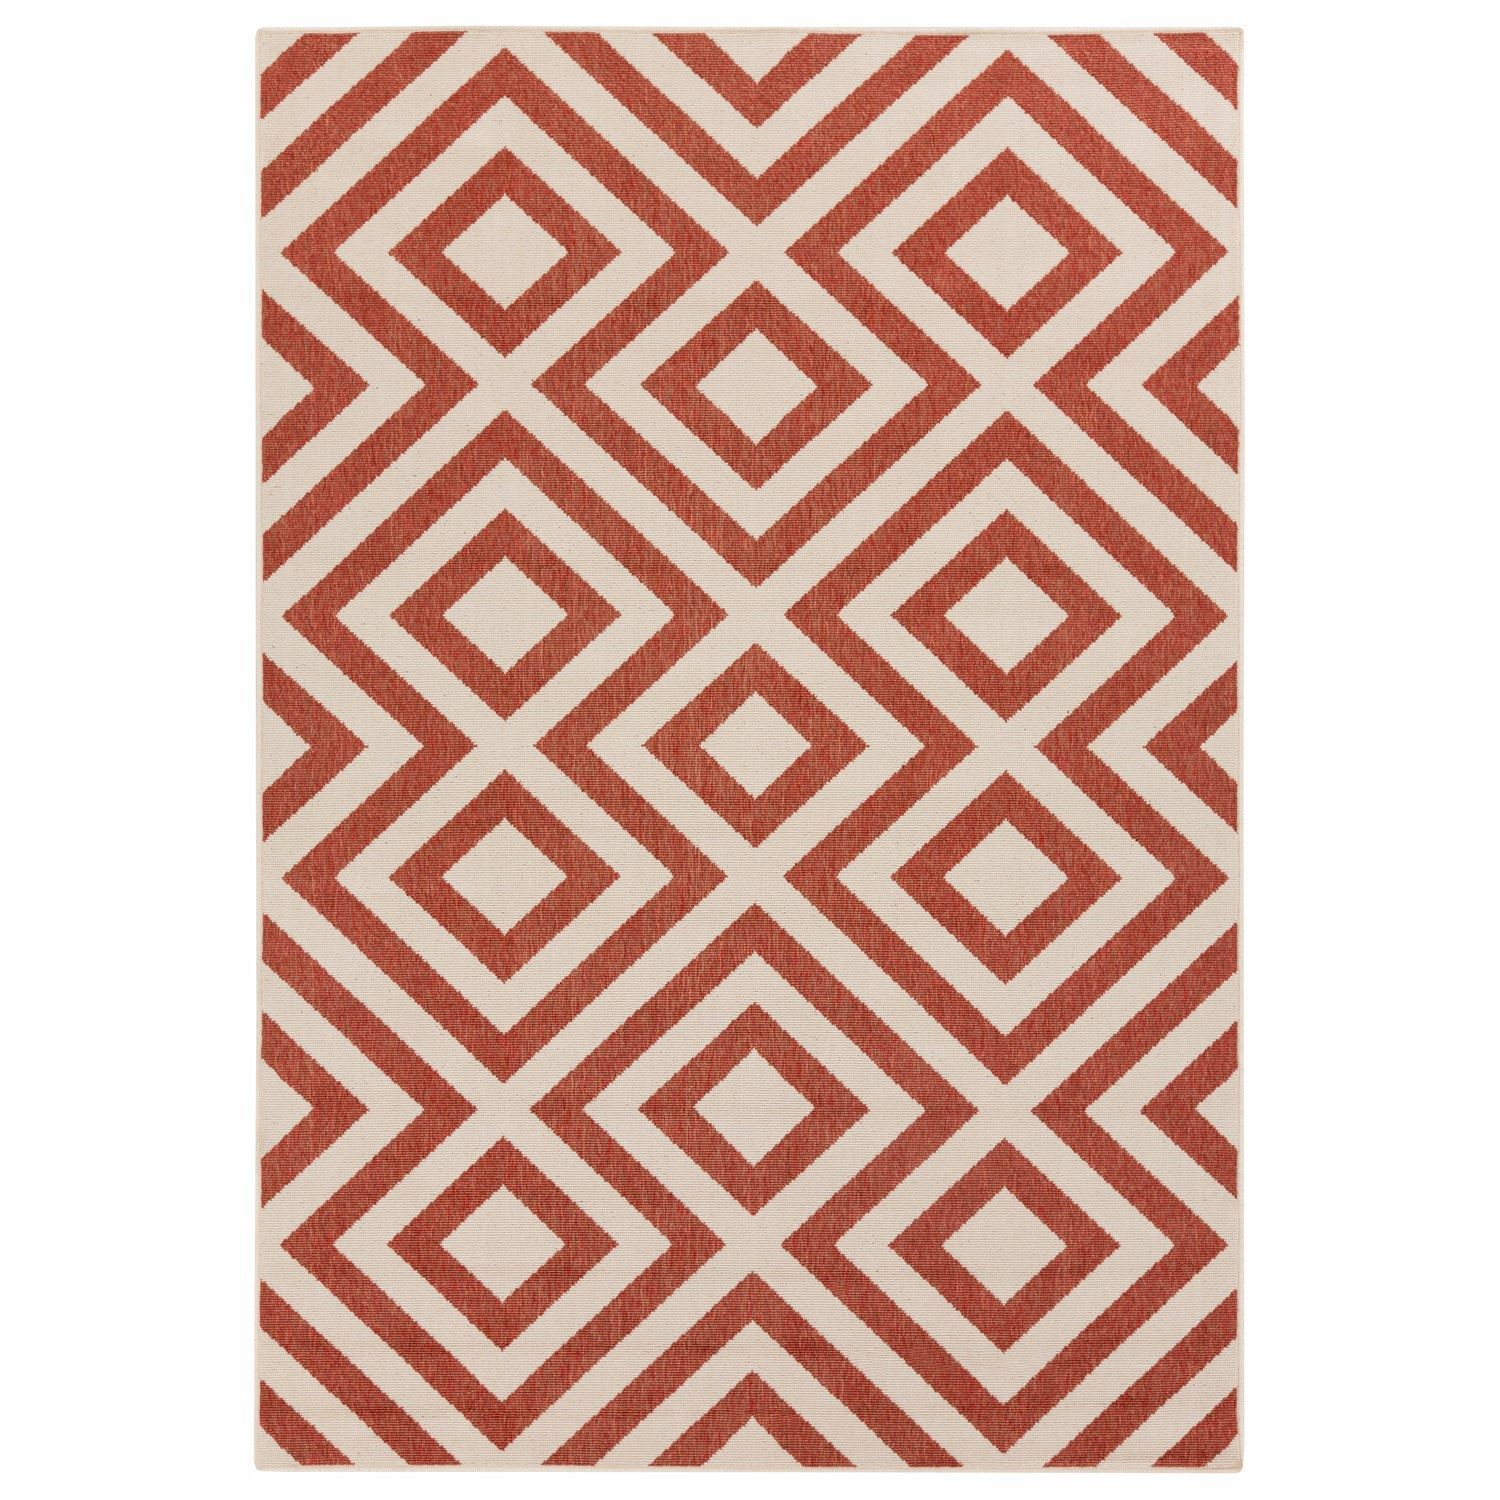 Surya Alfresco Turca Red Indoor/Outdoor Rug. Surya Semi Annual Sale! 20